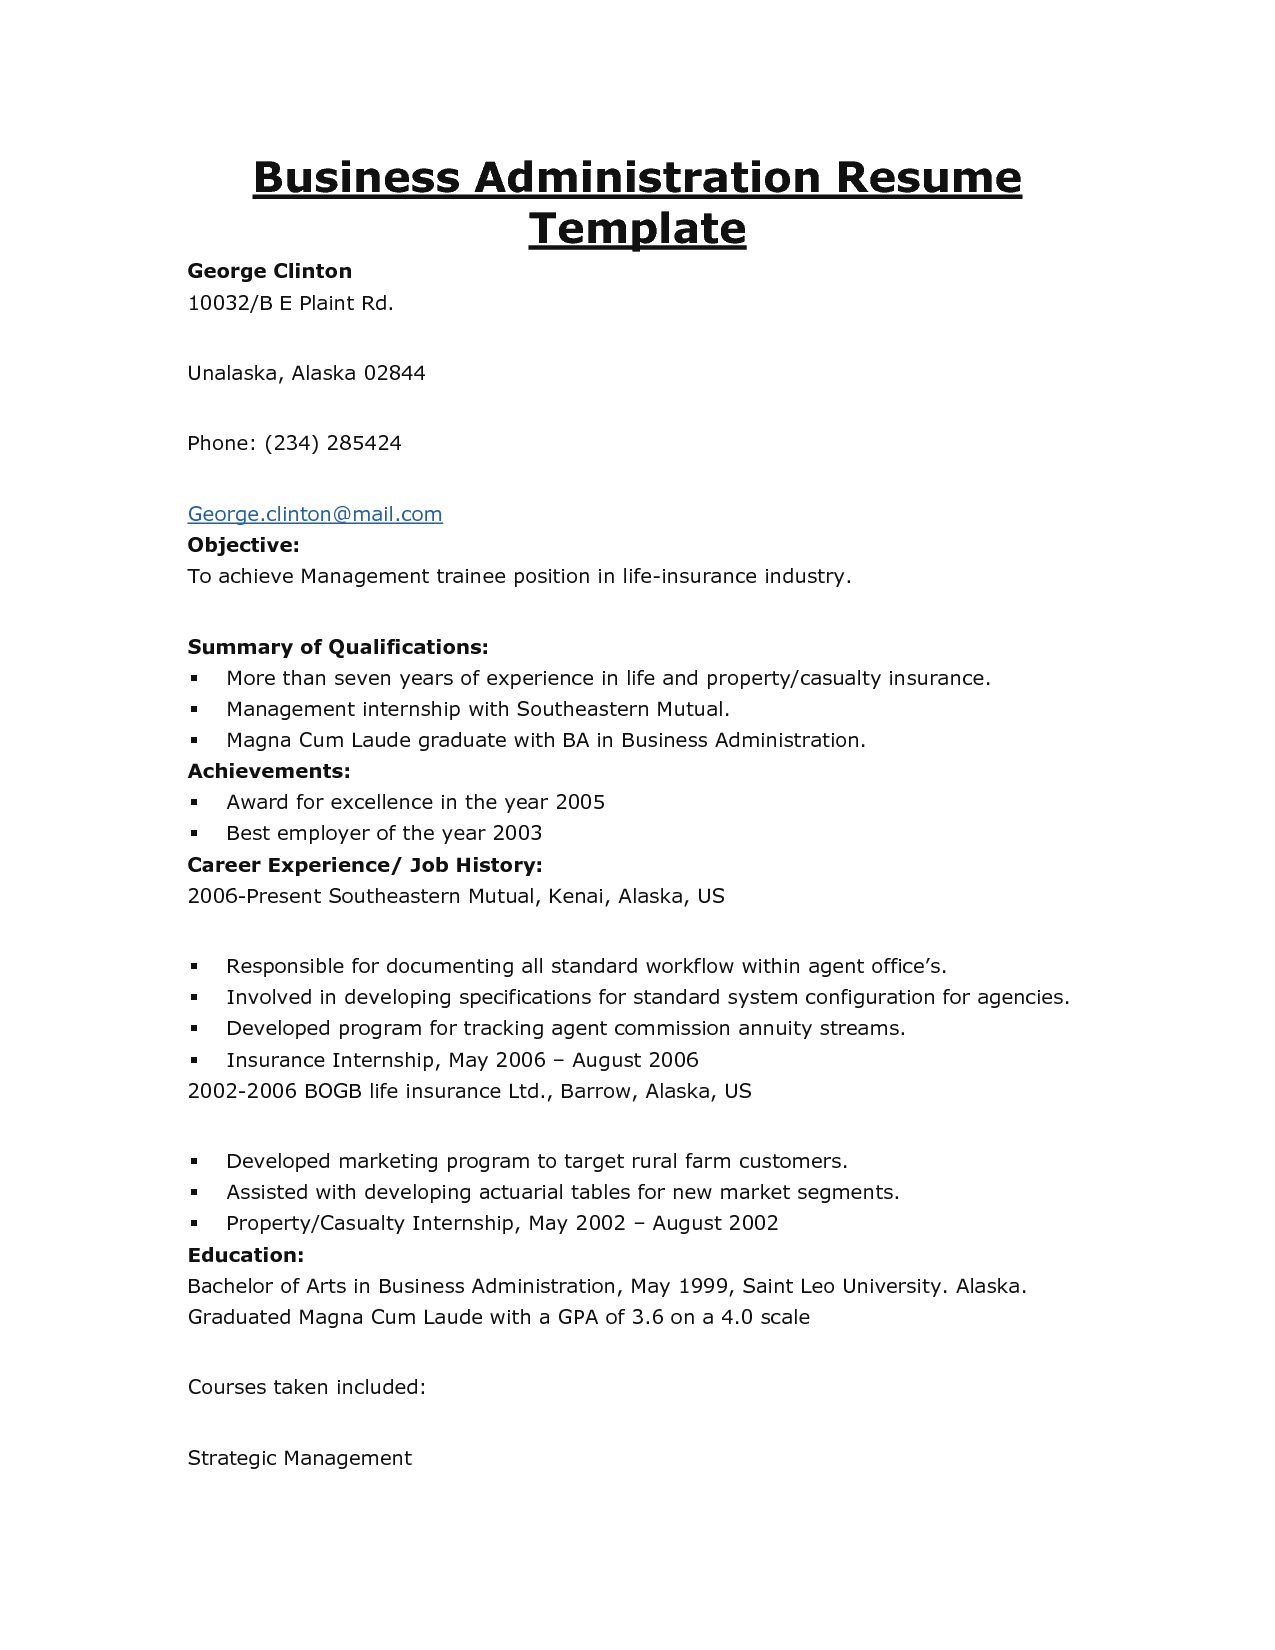 Ba Graduate Resume Sample Resume Examples Business Management Business Examples